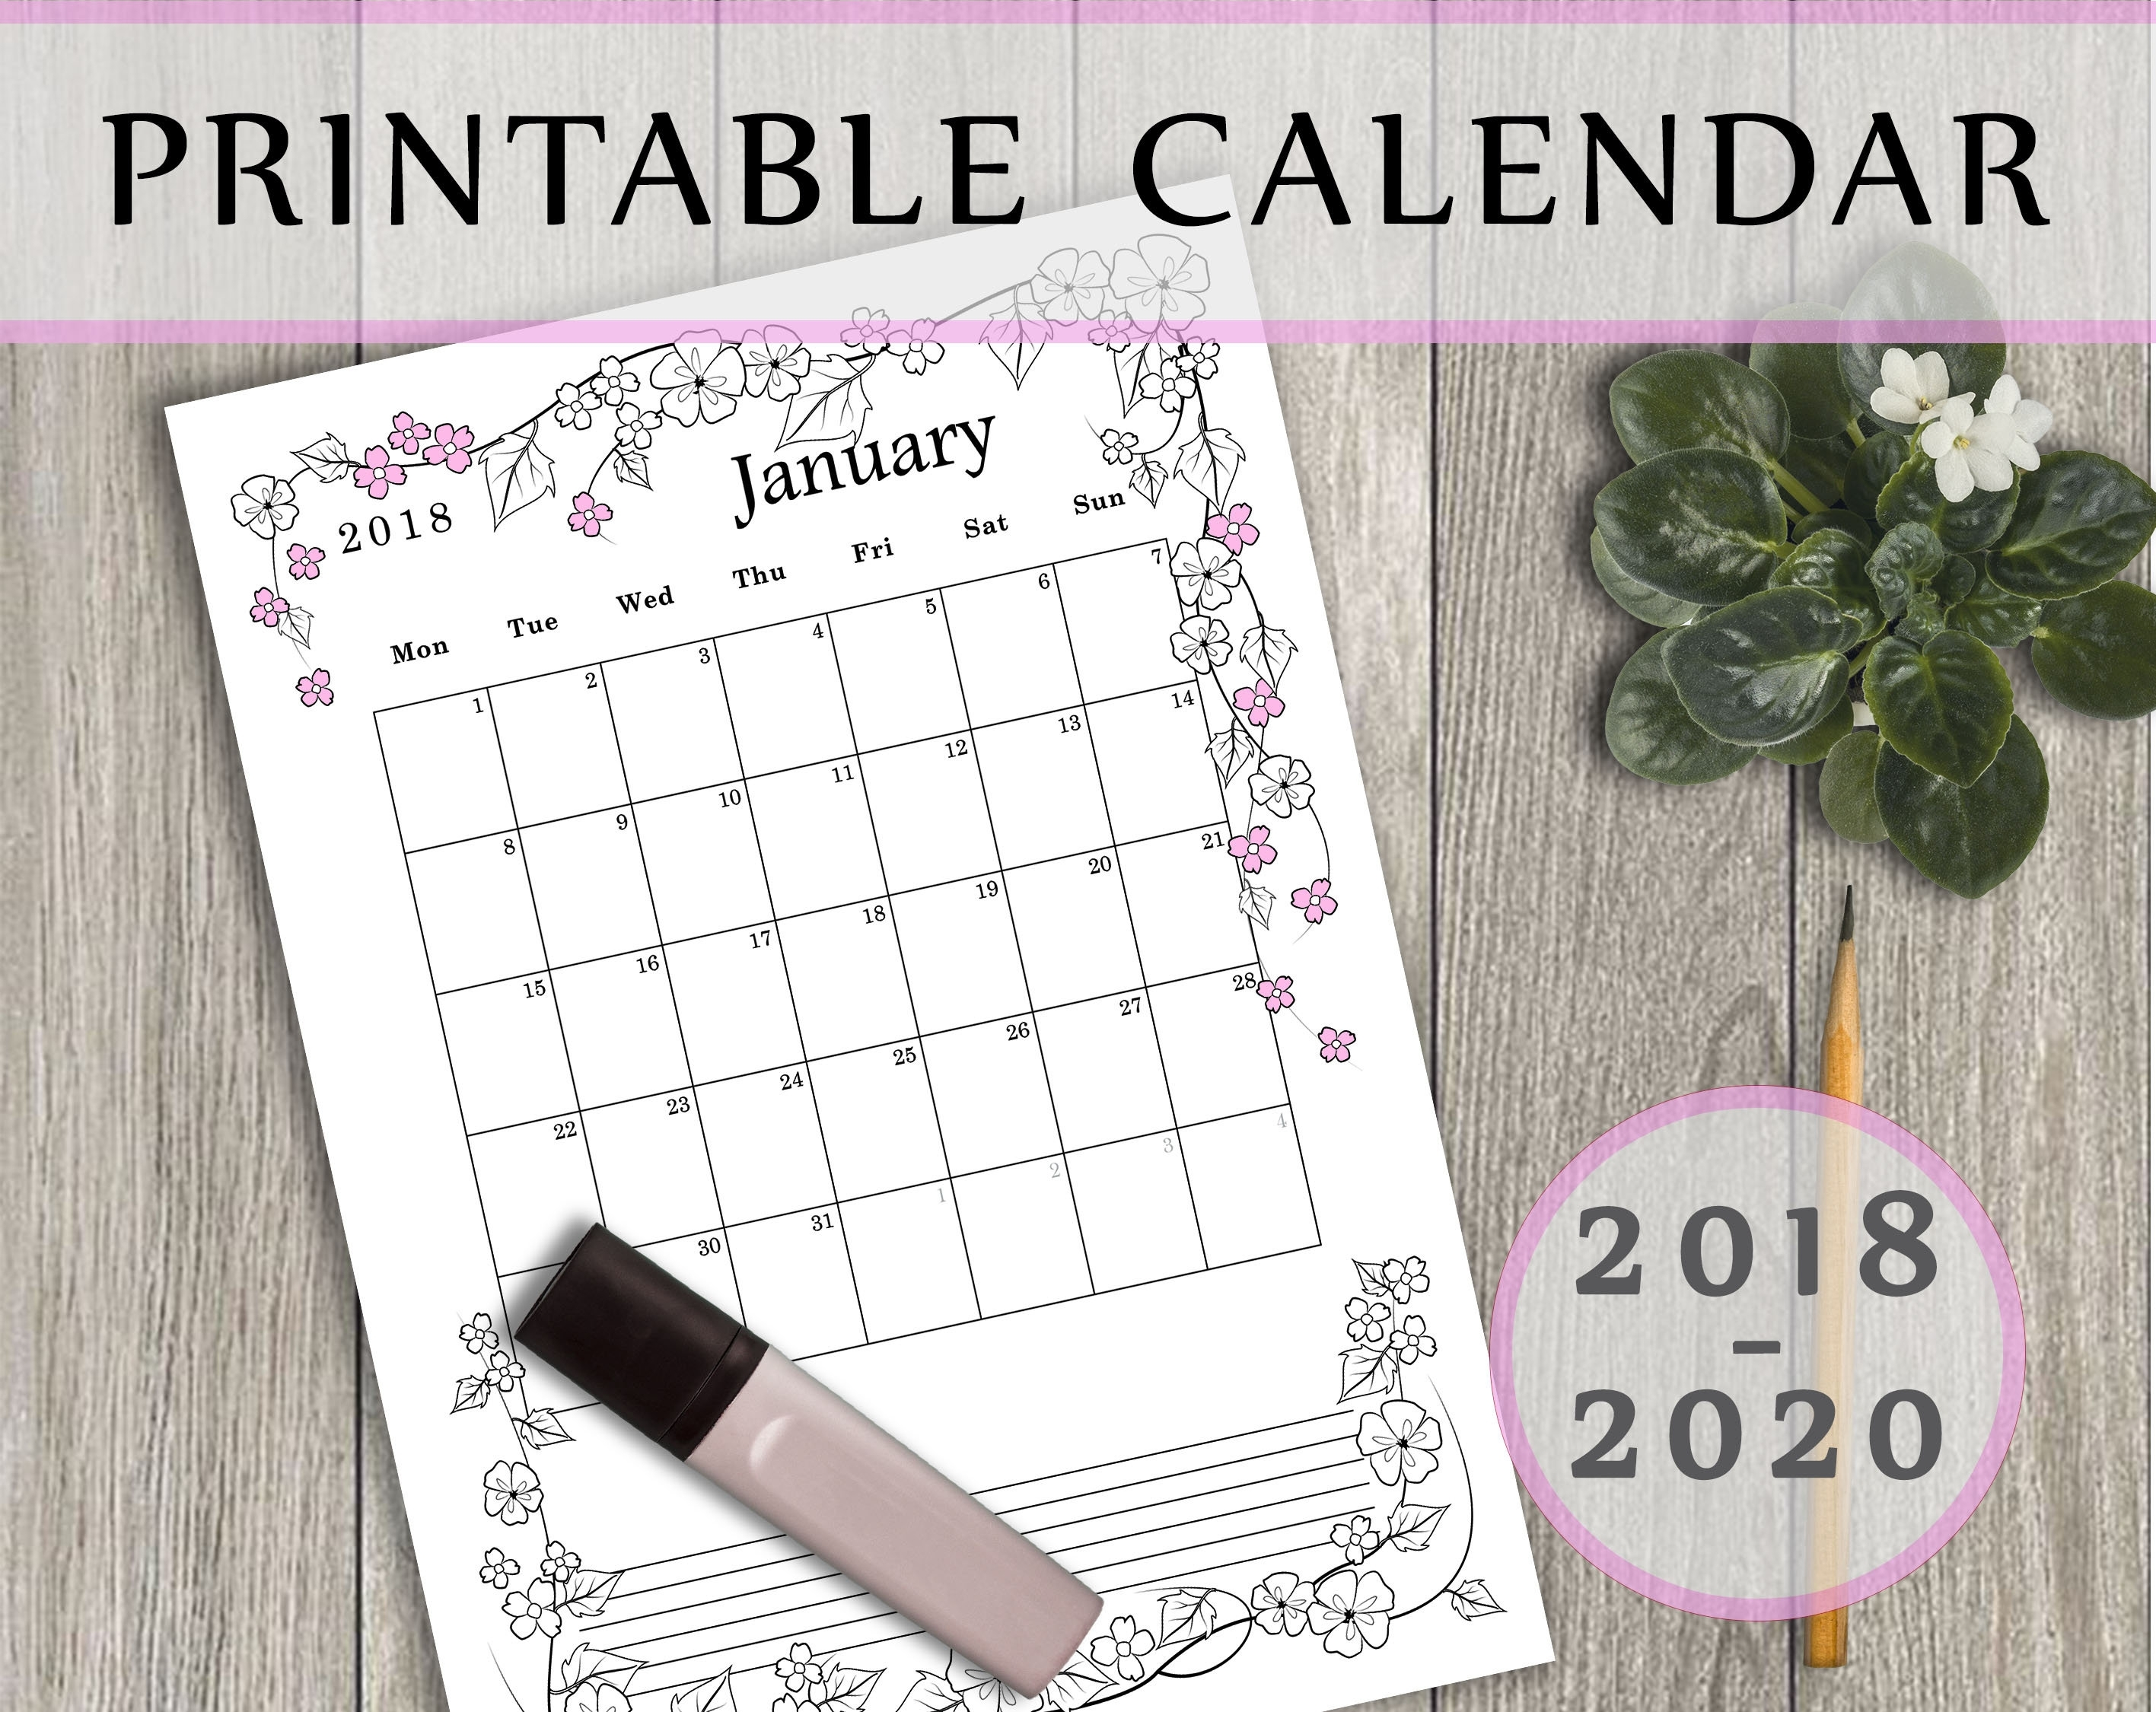 Calendar 2019 2019 2020. Month Per Page. Monthly Planner. | Etsy inside Printable Coloring Calendar 2019-2020